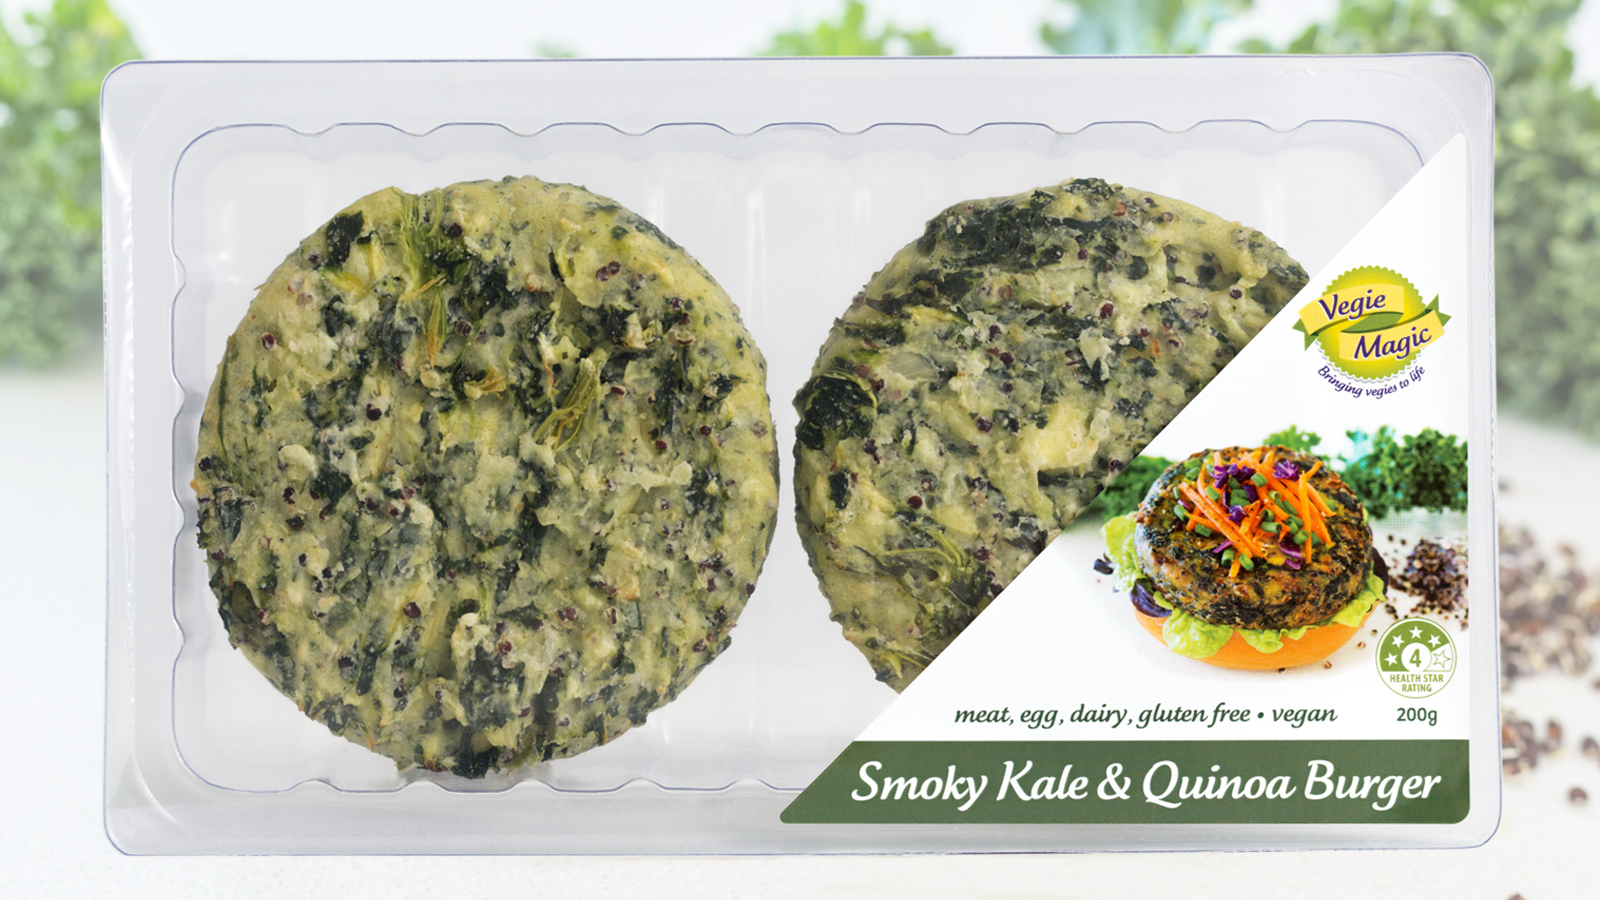 Vegie Magic Smoky Kale & Quinoa Tray Pack